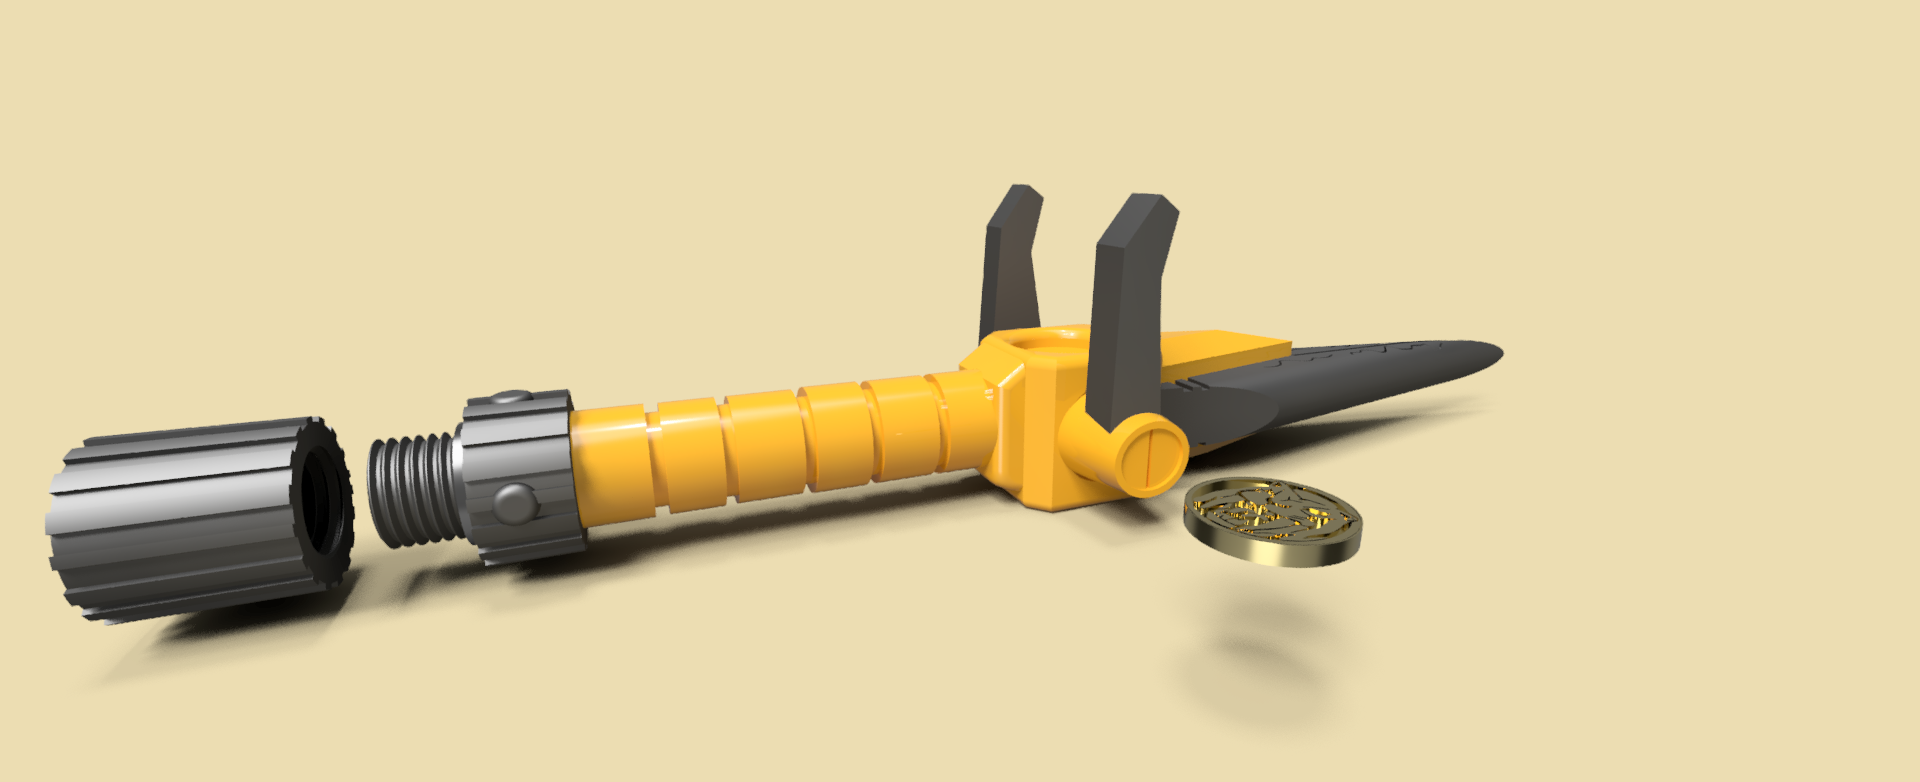 7.png Download STL file Power Dagger Ranger Yellow Super Sentai • 3D printable template, Geralp